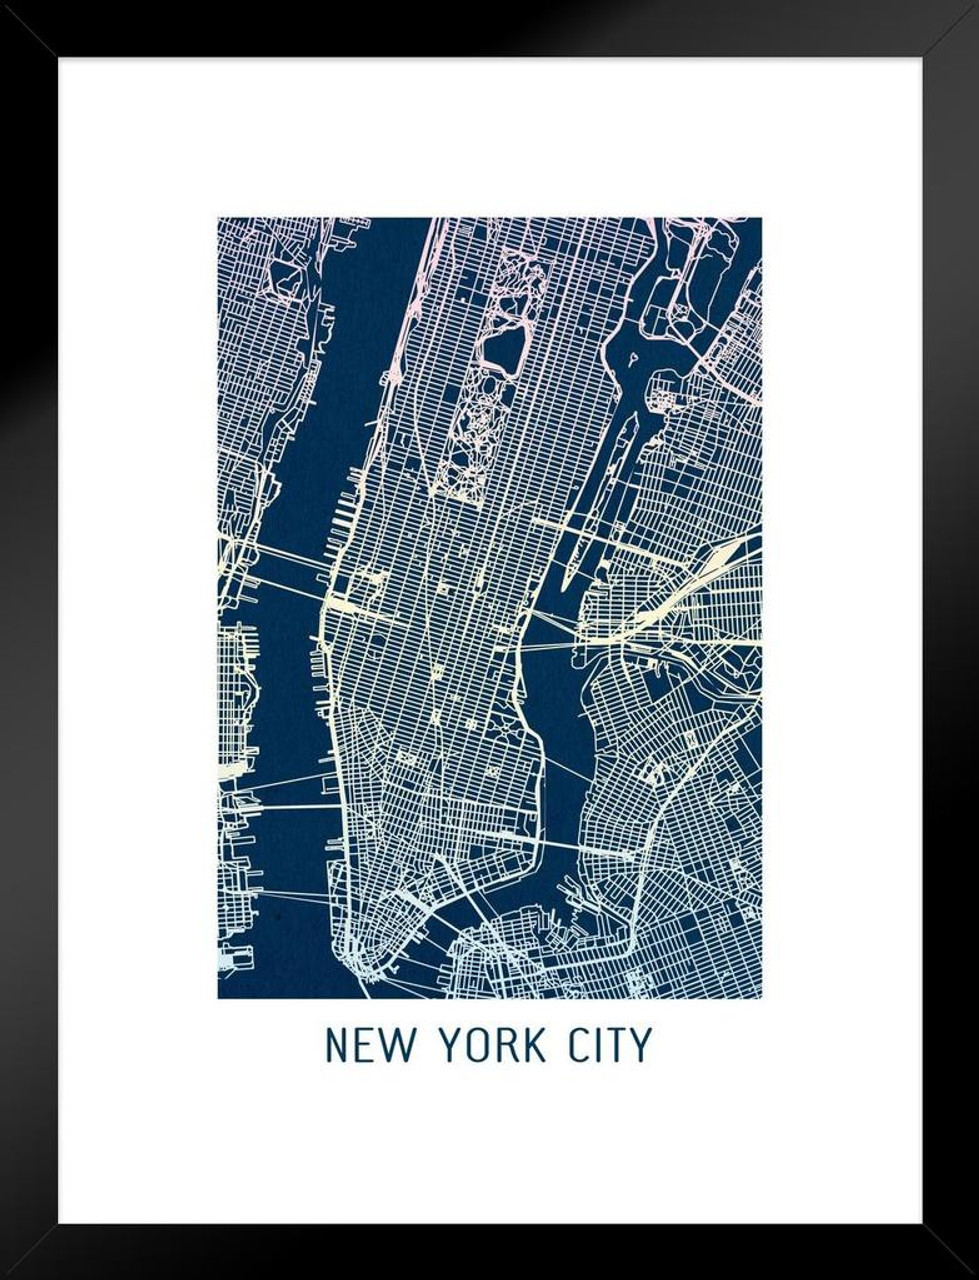 New York City Colorful Minimalist Art Map Art Matted Framed Wall Art Map Art Prints on map flags, map design, antique maps and prints, map clothing, map of california, map accessories, map home decor, map wedding, map medieval prints, map craft prints,